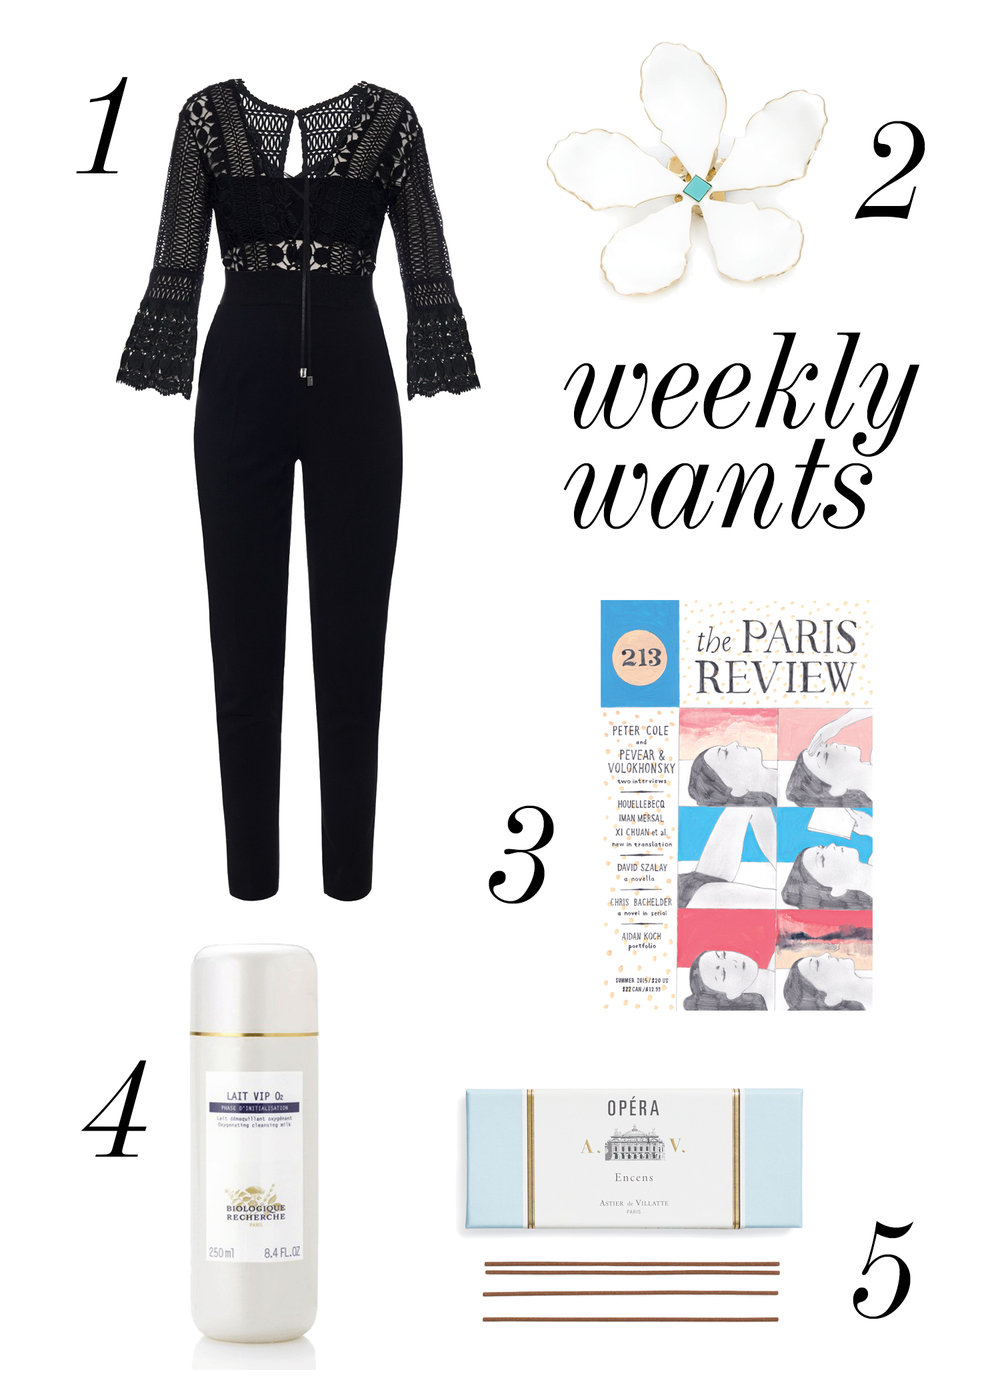 WEEKLY WANTS 9-04-15